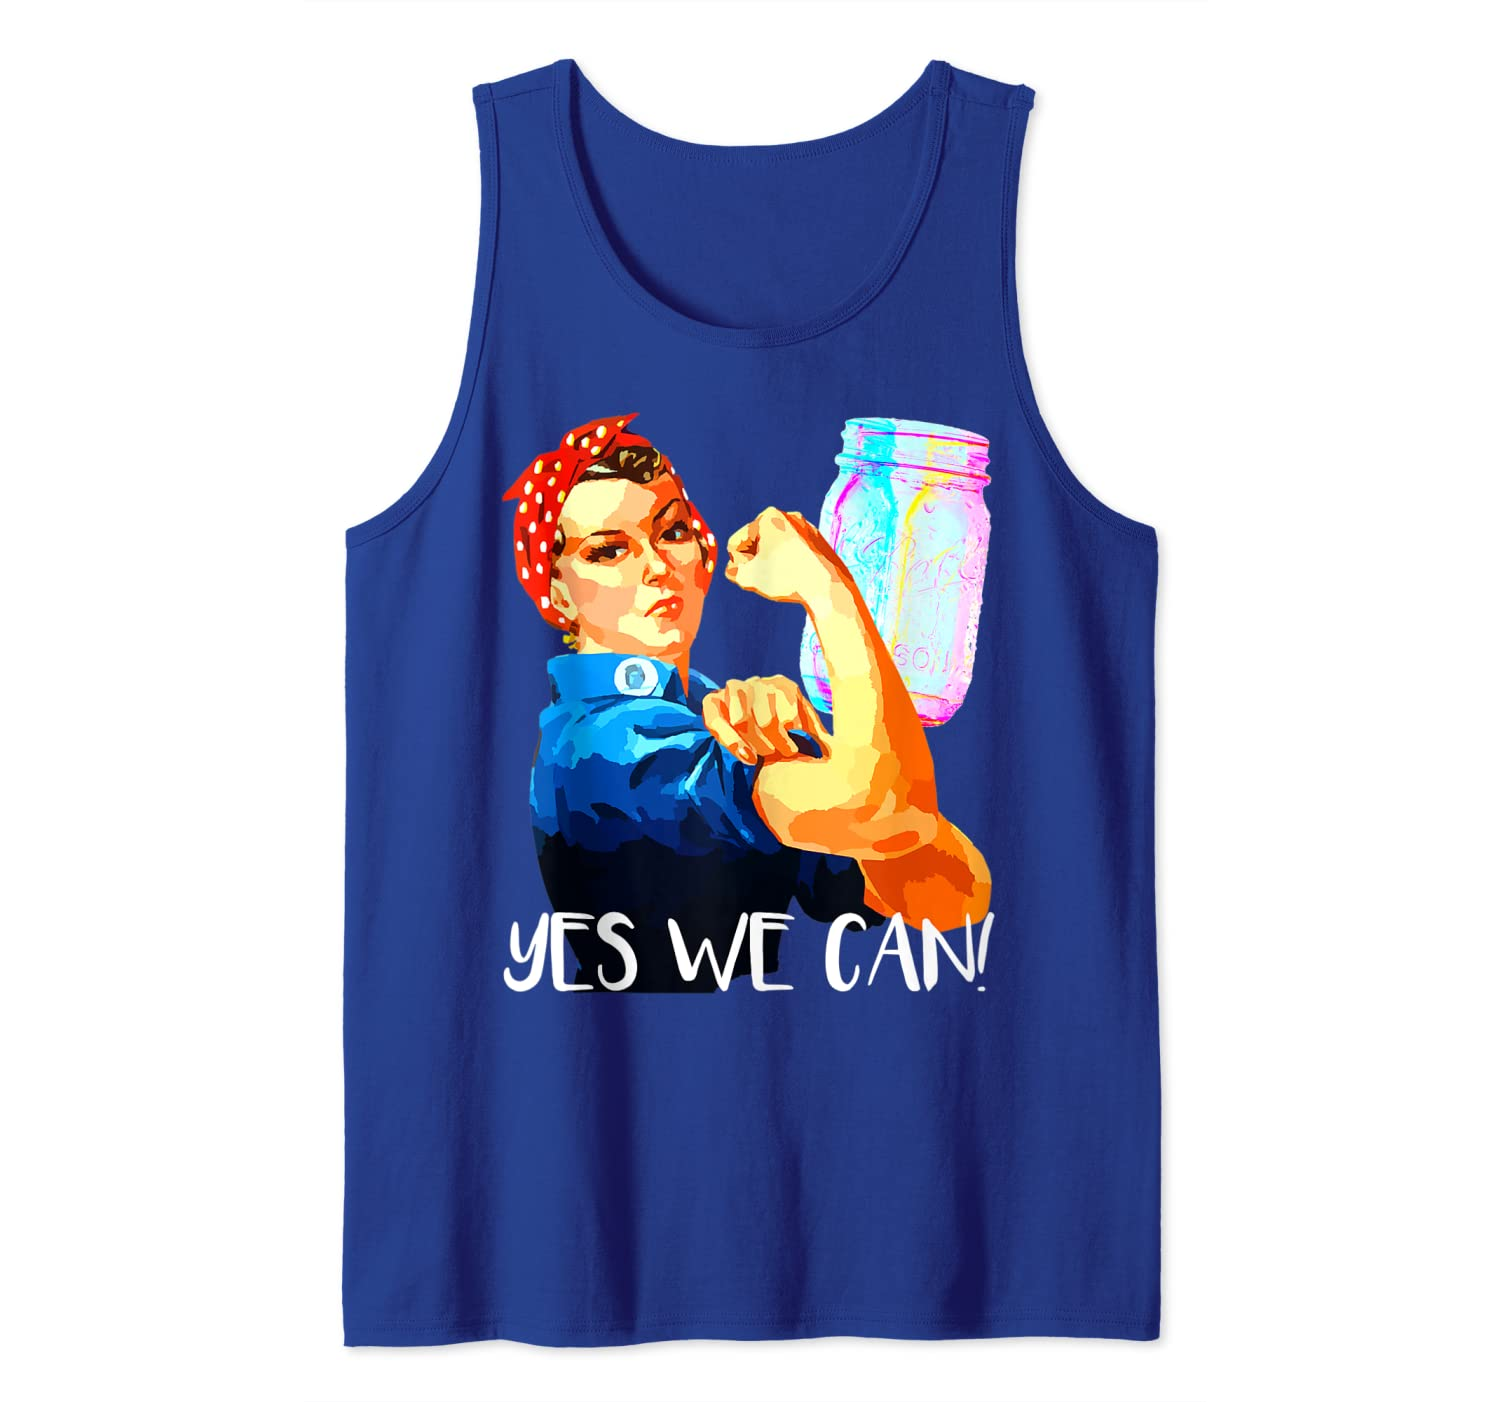 Yes We Can! Rosie the Riveter Super Funny Canning Tank Top